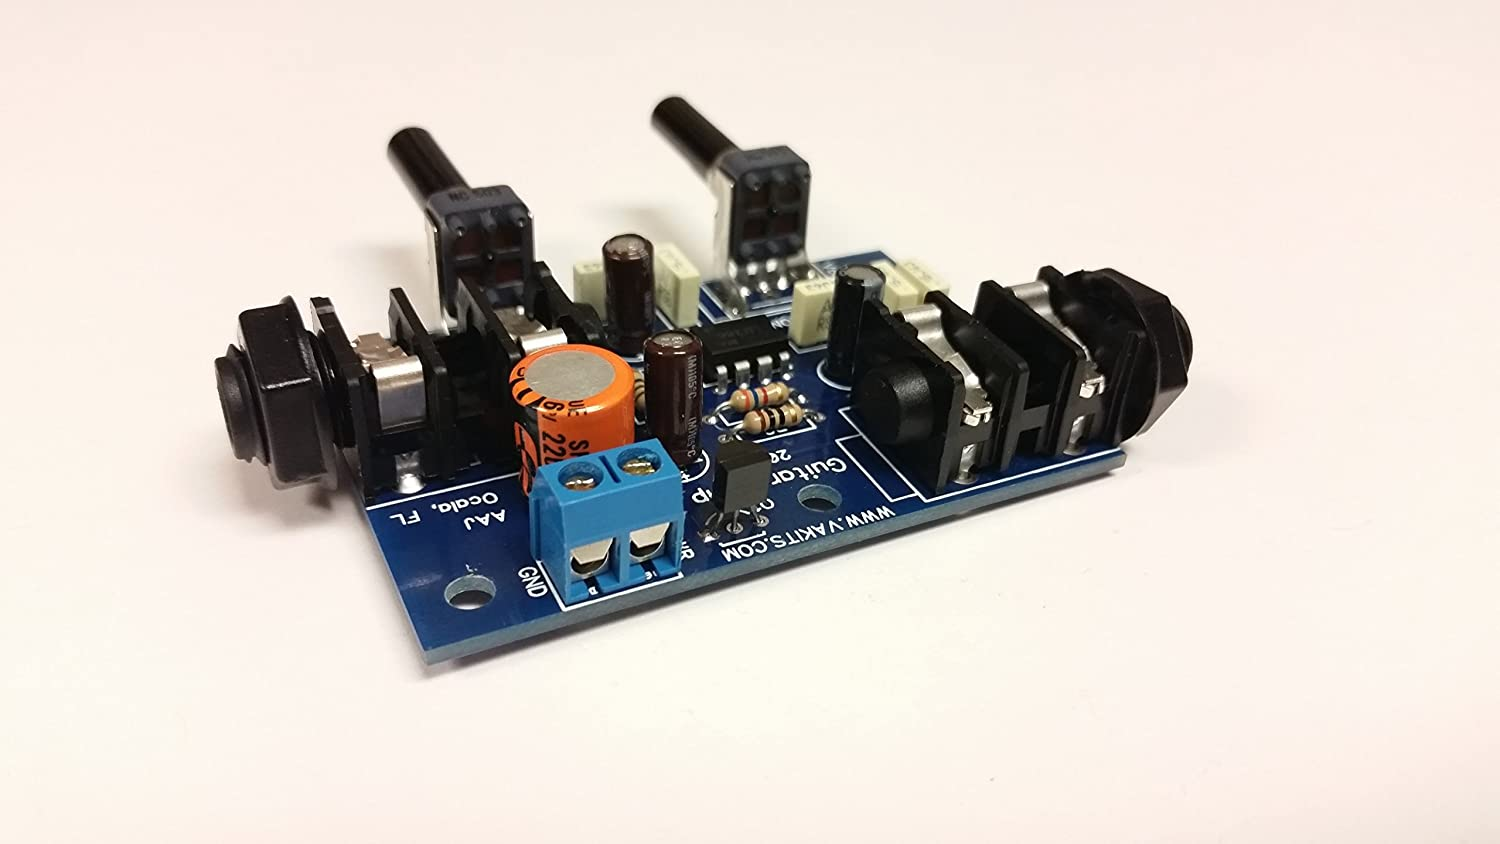 Nightfire Electronics Guitar Amplifier Kit 1127 Home How To Make A Circuit Board Pick Audio Theater